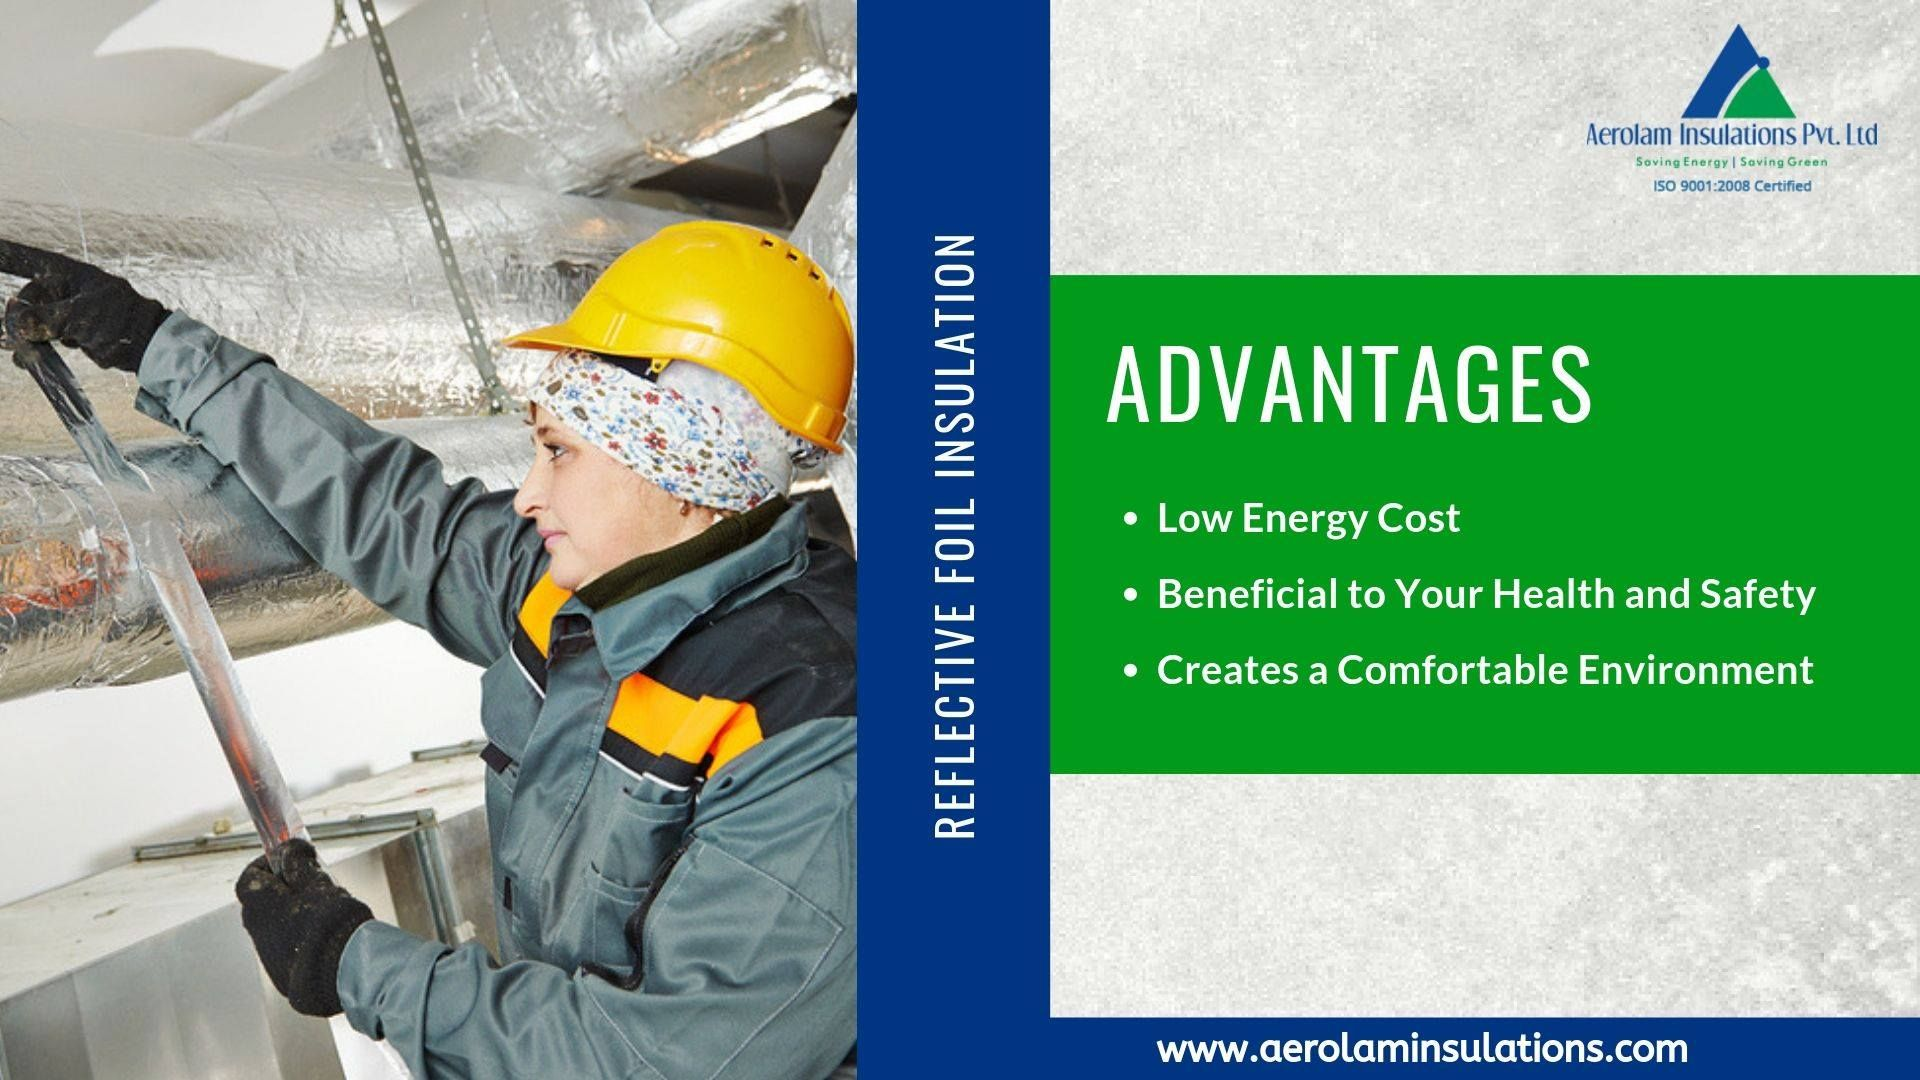 Pin By Aerolam Insulations On Insulations Solutions Reflective Foil Insulation Insulation Materials Foil Insulation